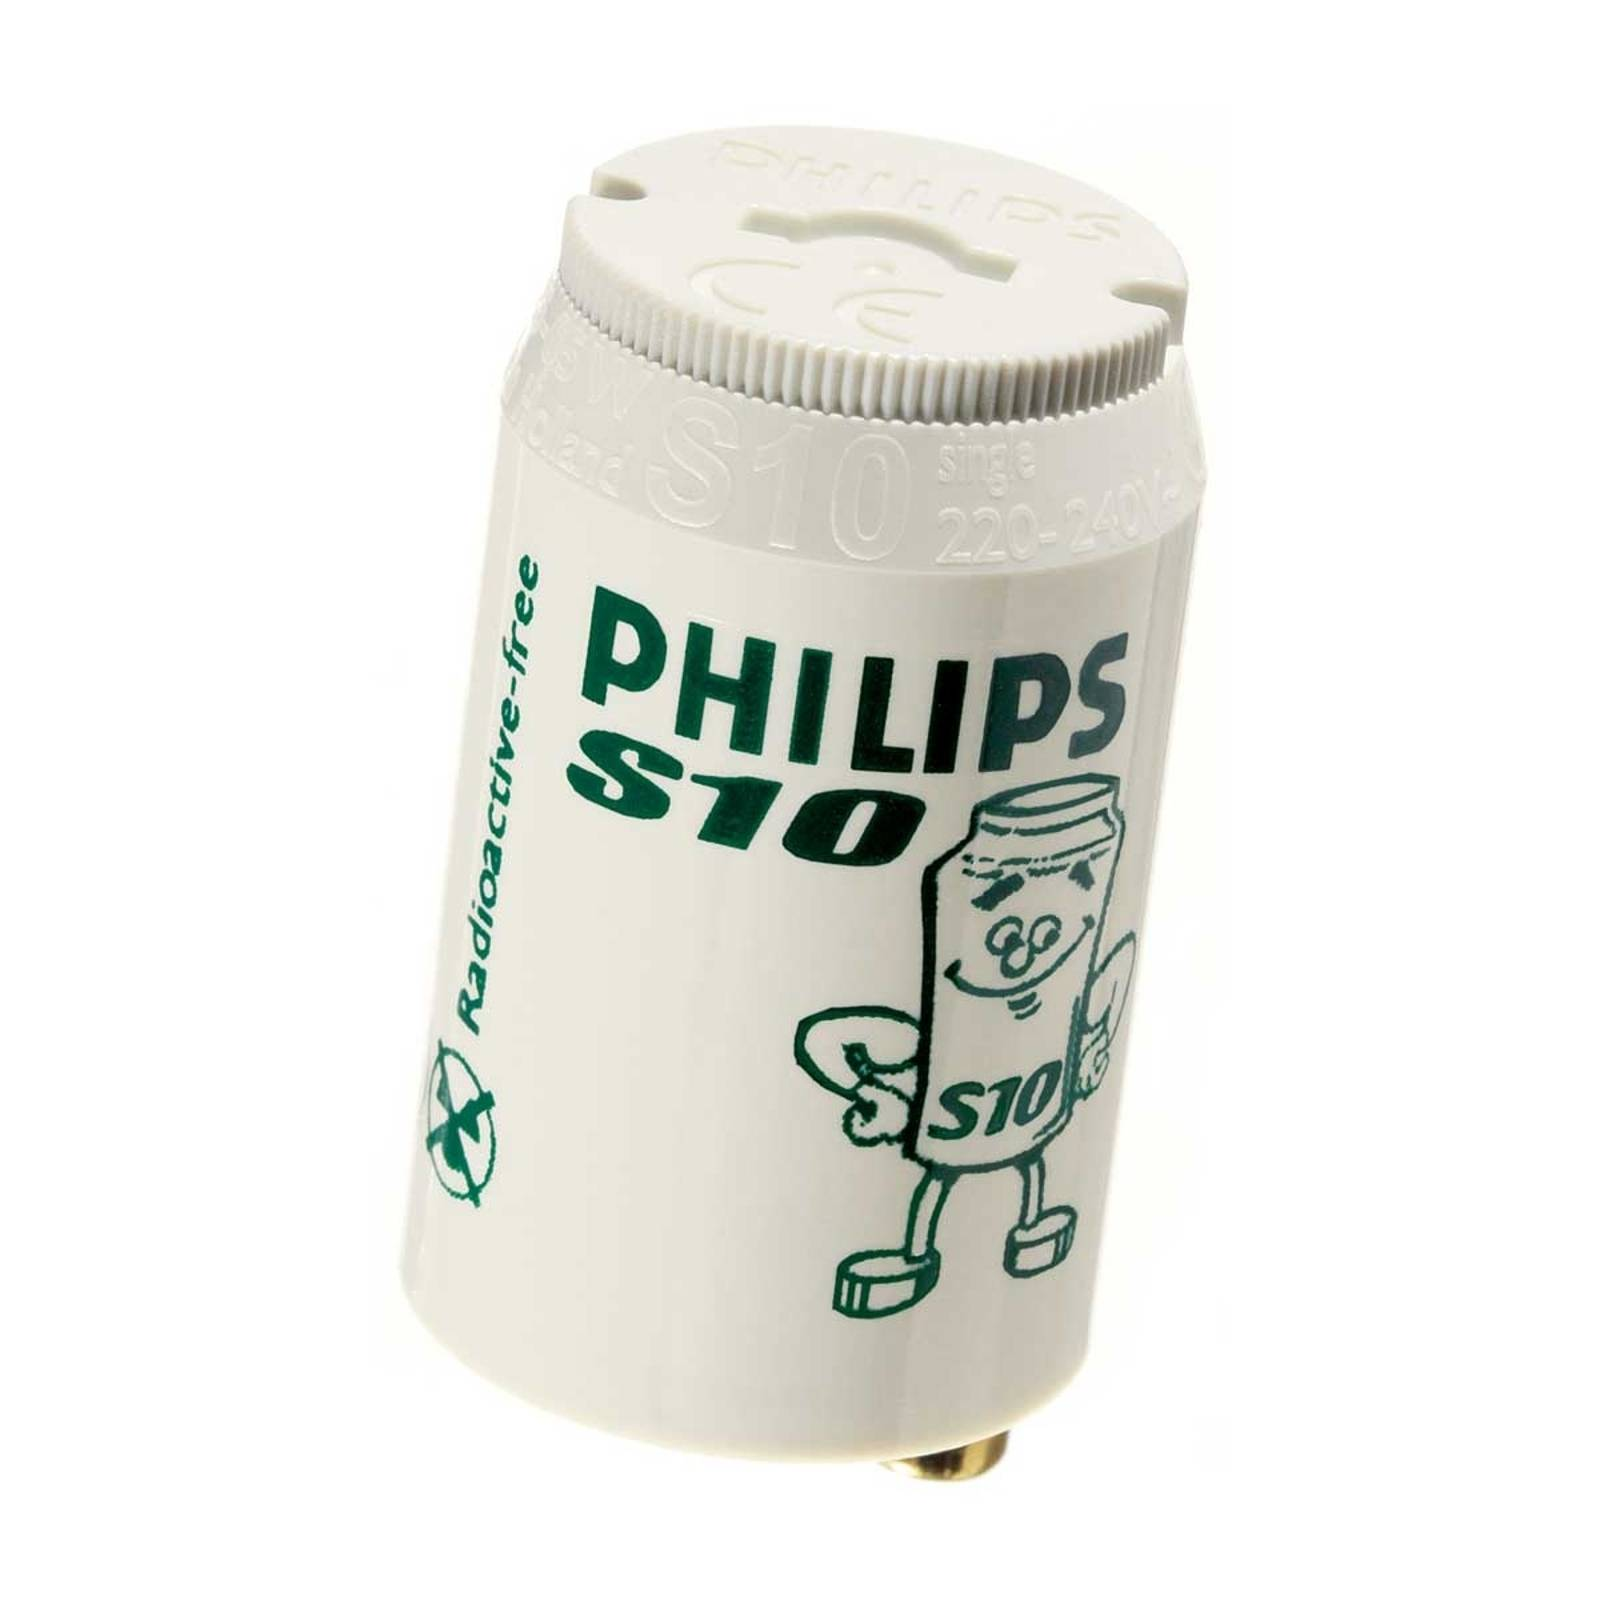 Starter for fluorescent bulbs S10 4-65W - Philips from Philips